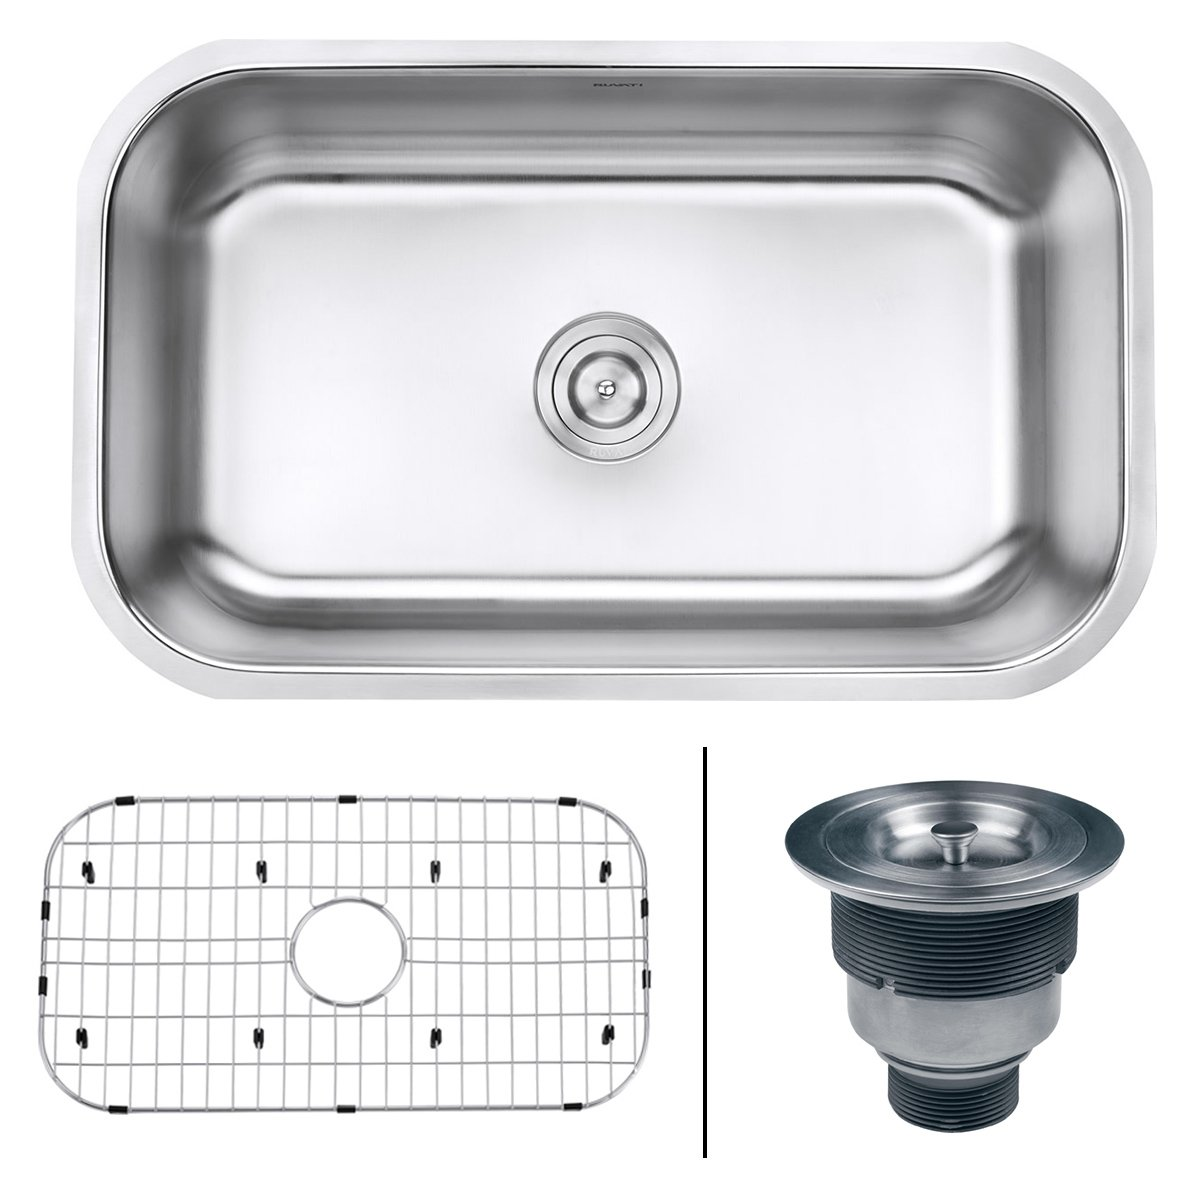 Ruvati RVM4250 Undermount 16 Gauge 30'' Kitchen Single Bowl Sink, Stainless Steel by Ruvati